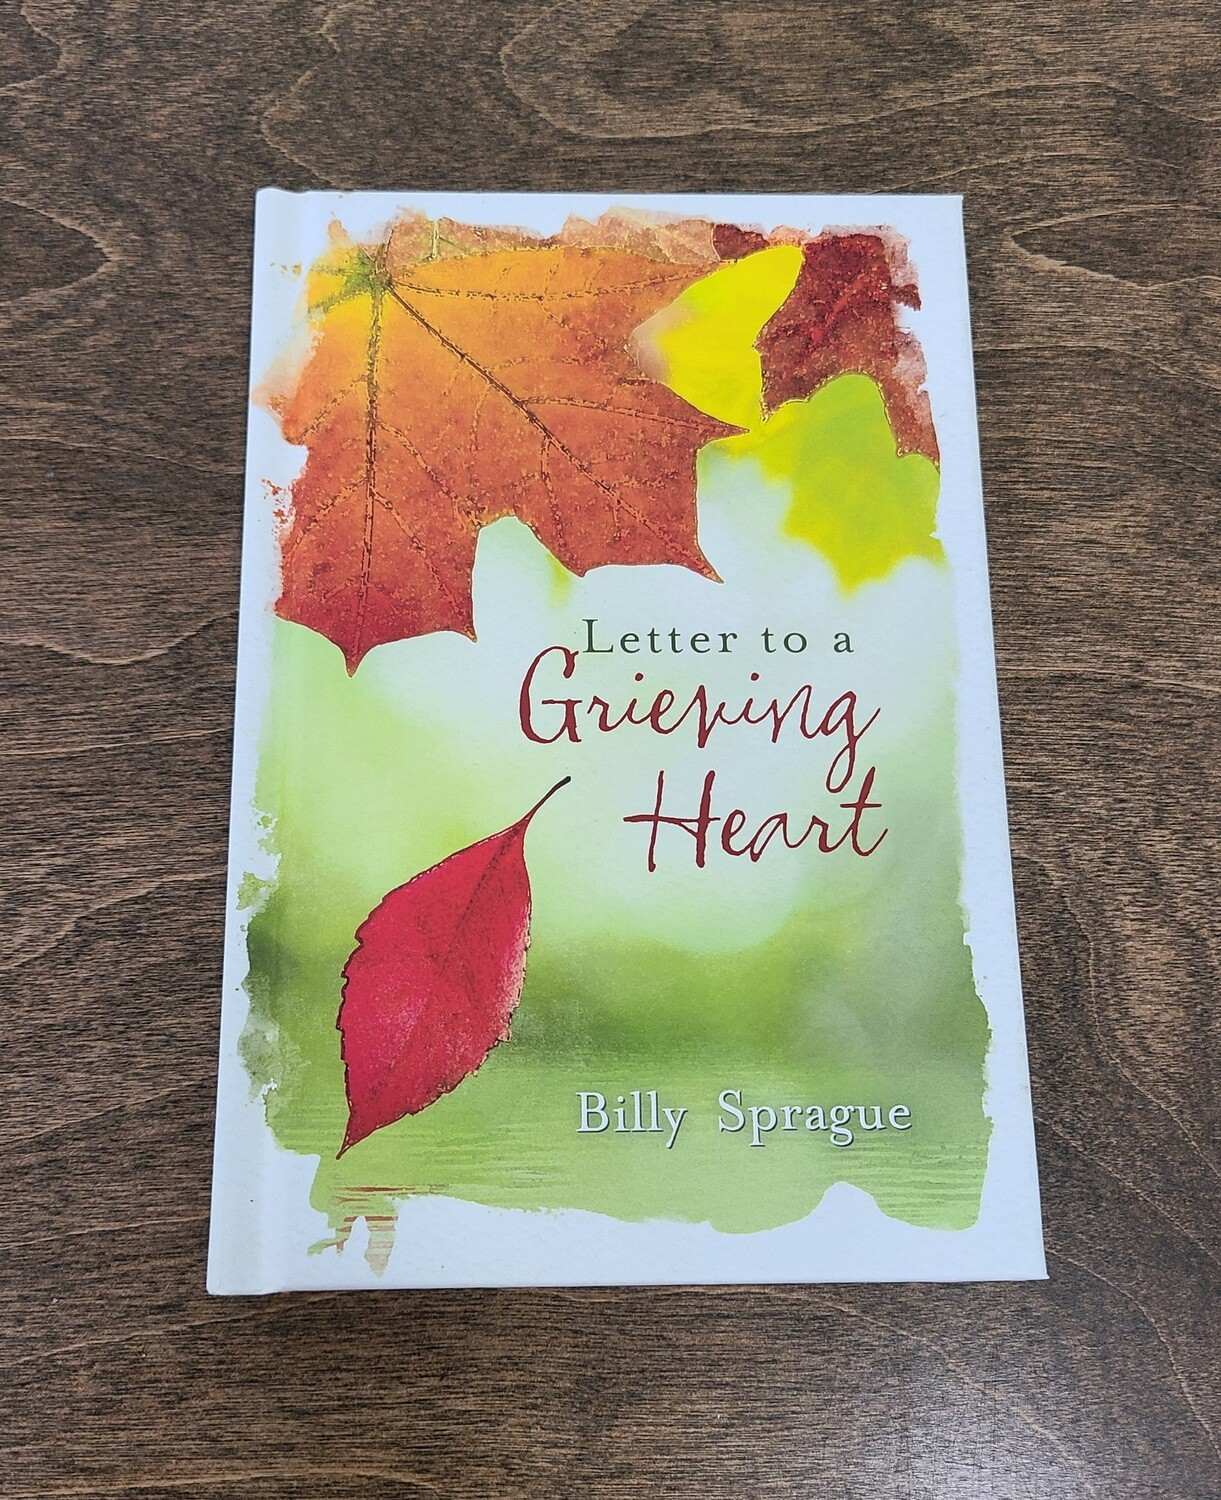 Letter to a Grieving Heart by Billy Sprague